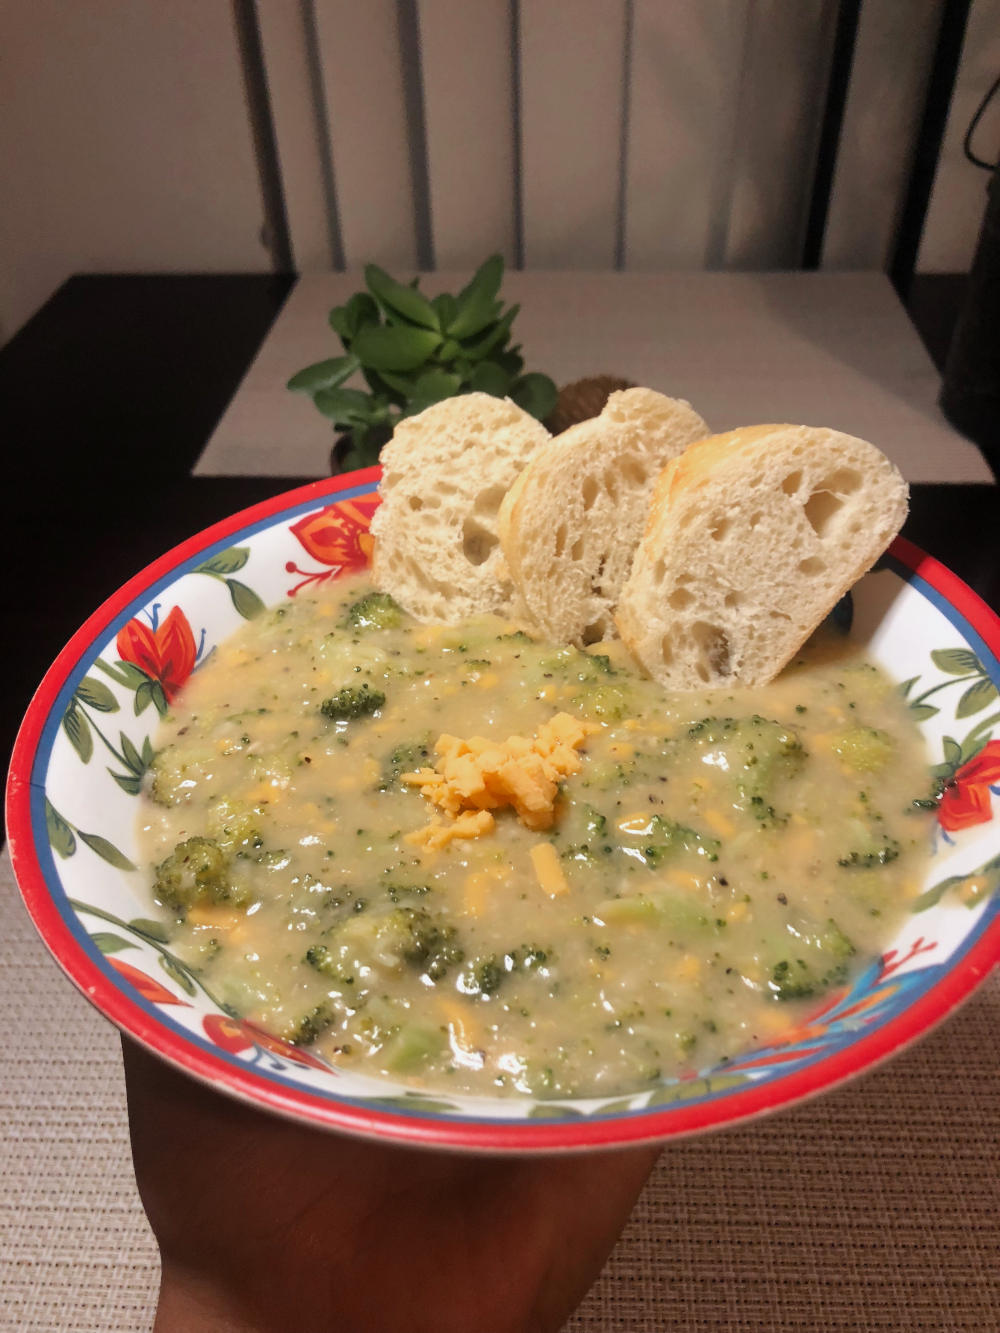 Final Product: Vegan Cheddar Broccoli Soup